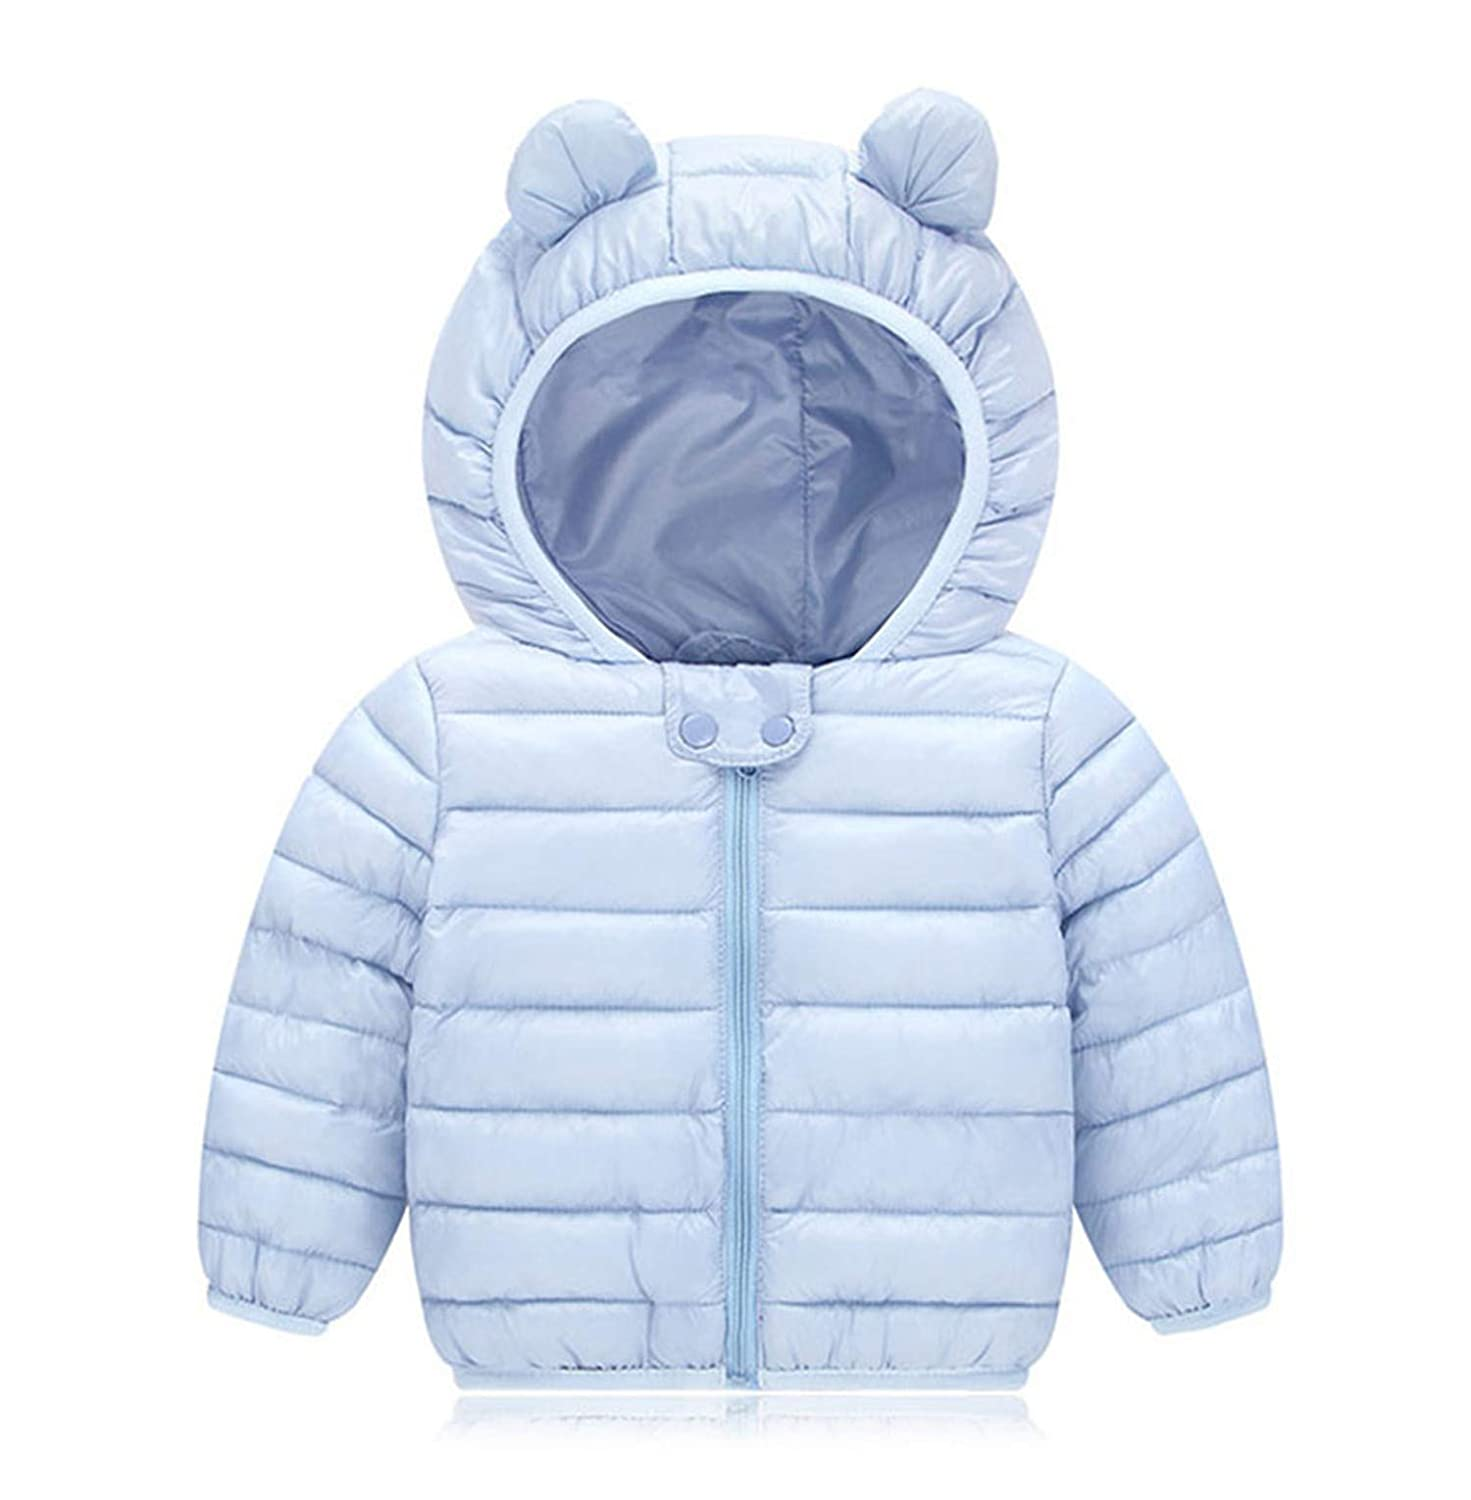 Susie Zechariah Baby Girls Jacket Autumn Clothes Winter Coat for Girls Kids Warm Hooded Outerwear